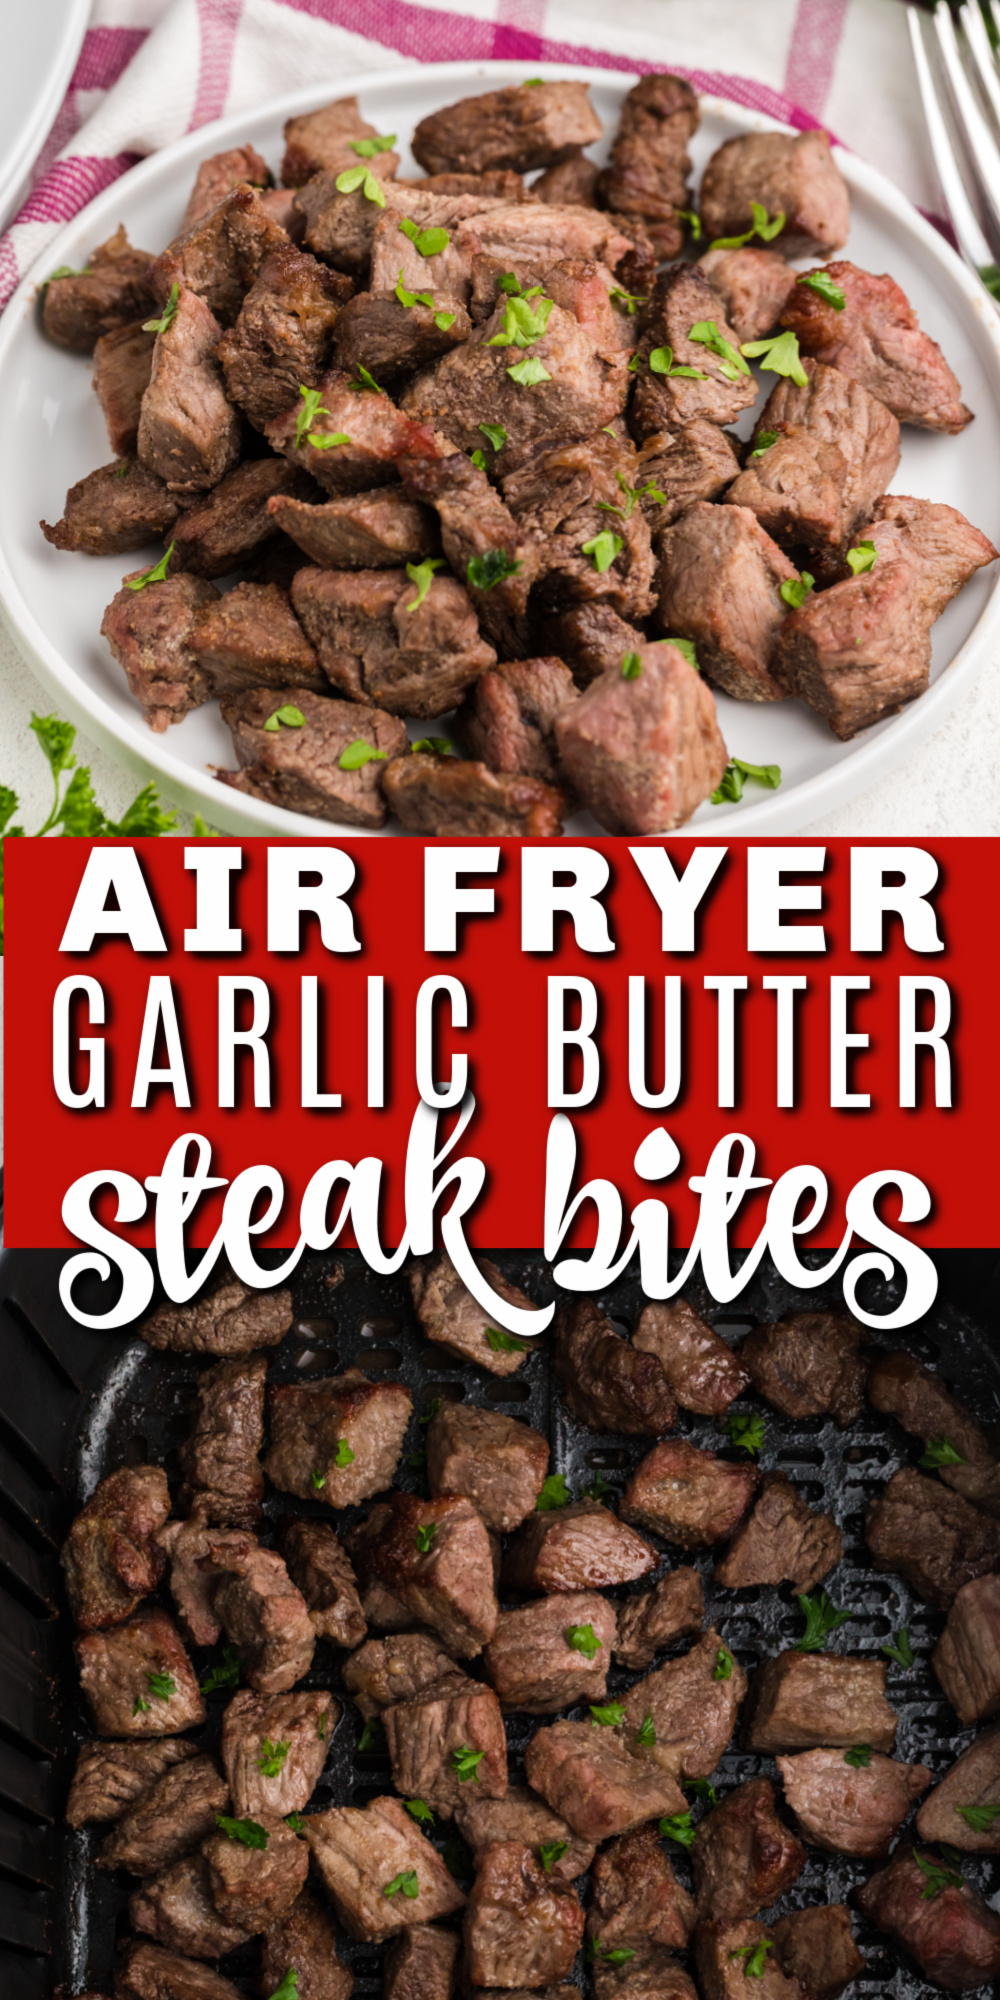 If you're looking for an easy air fryer recipe, this Air Fryer Garlic Butter Steak Bites recipe is one of my favorite ways to make juicy steak bites. And the best part? You can use a sirloin steak or other types of steak, and there is no cast iron skillet or stove top needed! Made with just a handful of ingredients in about 10-12 minutes.